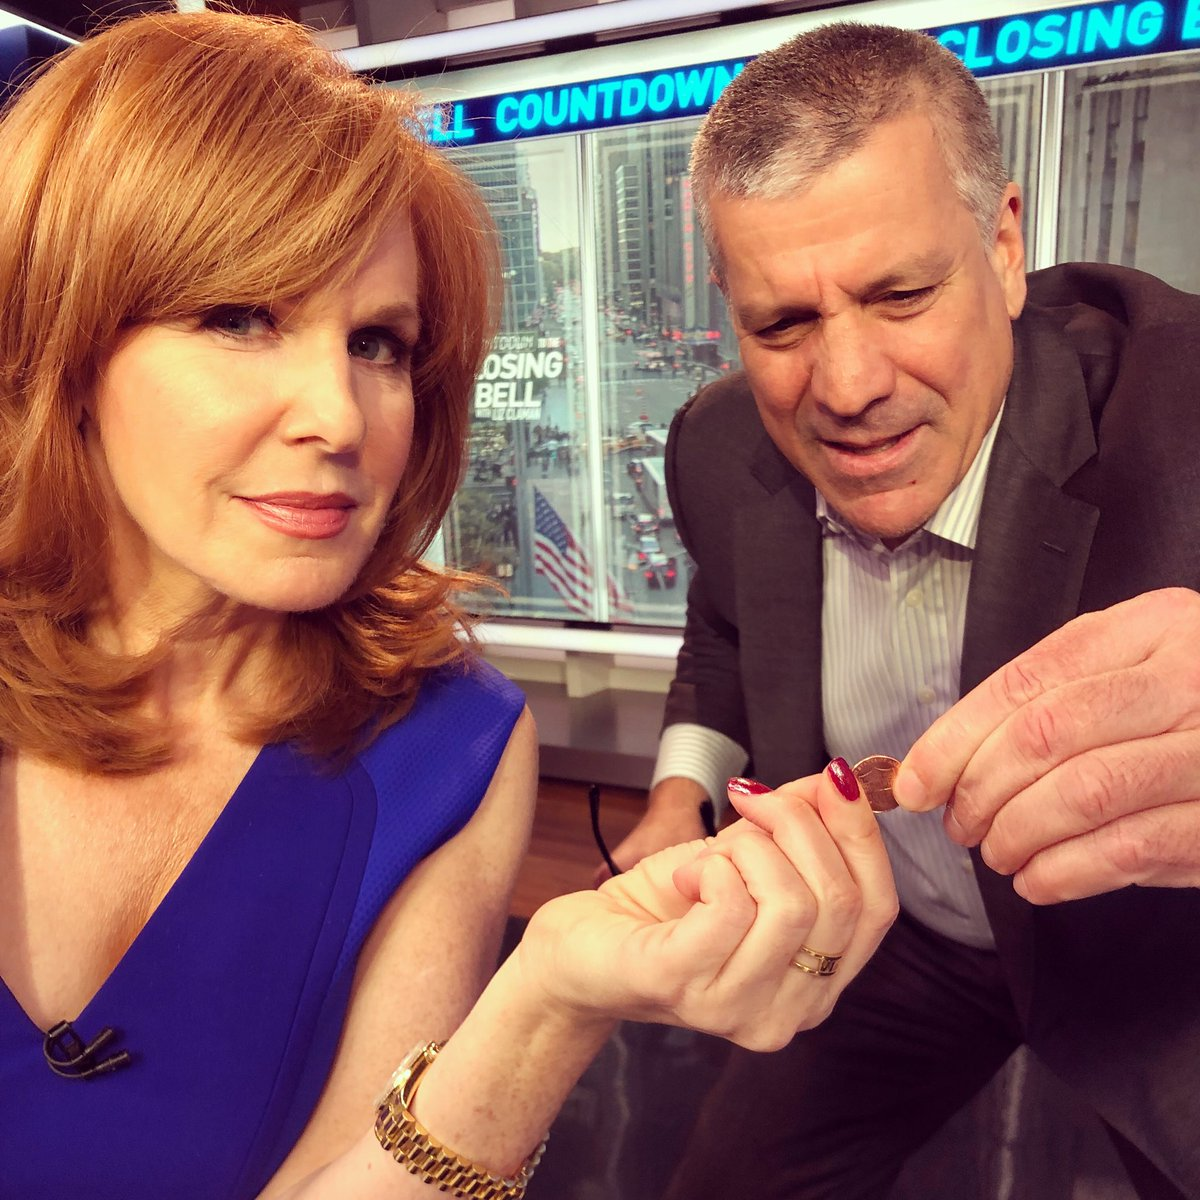 That Time When Gasparino And I Fought Over GEs Newly Announced Dividend